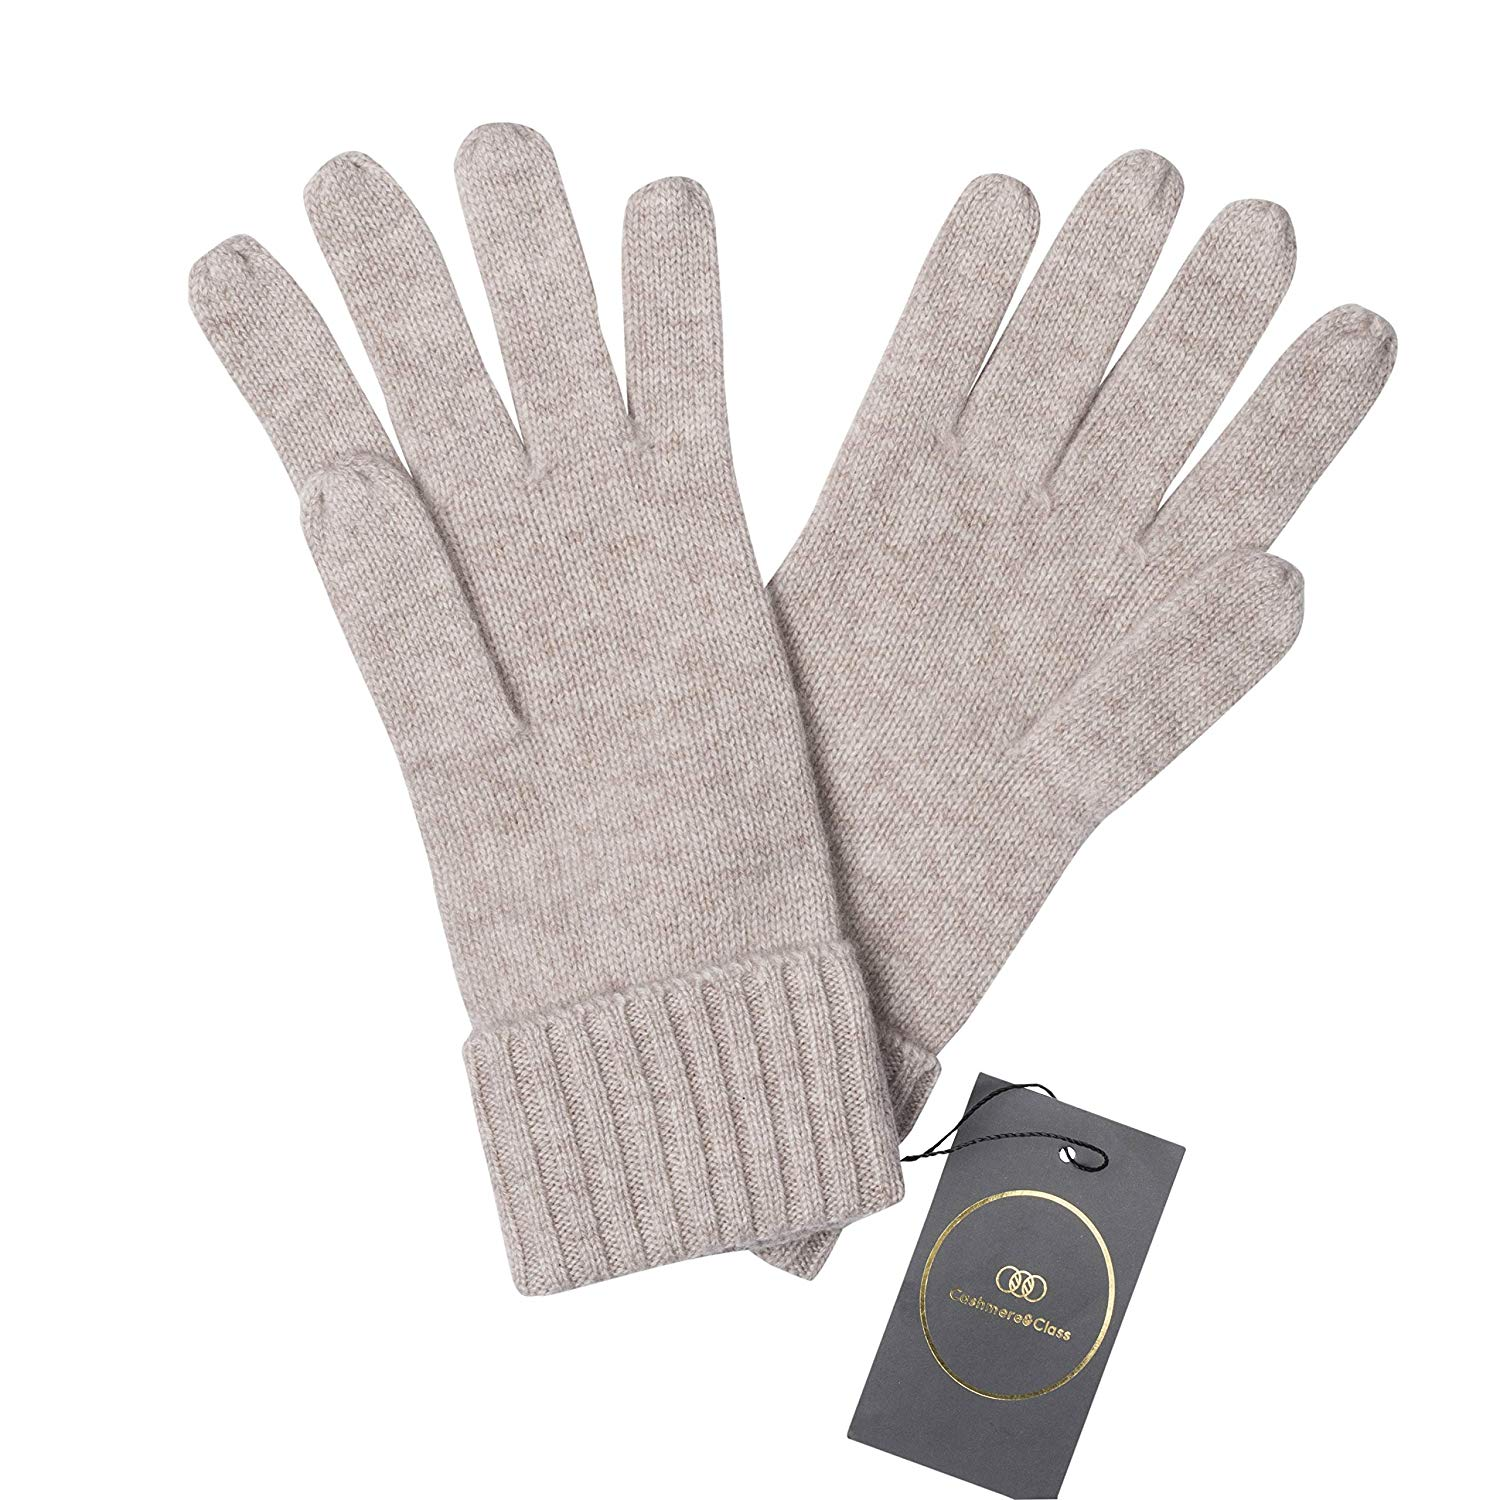 38c599d0bcf Get Quotations · Cashmere   Class Women s Cashmere Gloves w Ribbed Cuff  (Pair) Pure